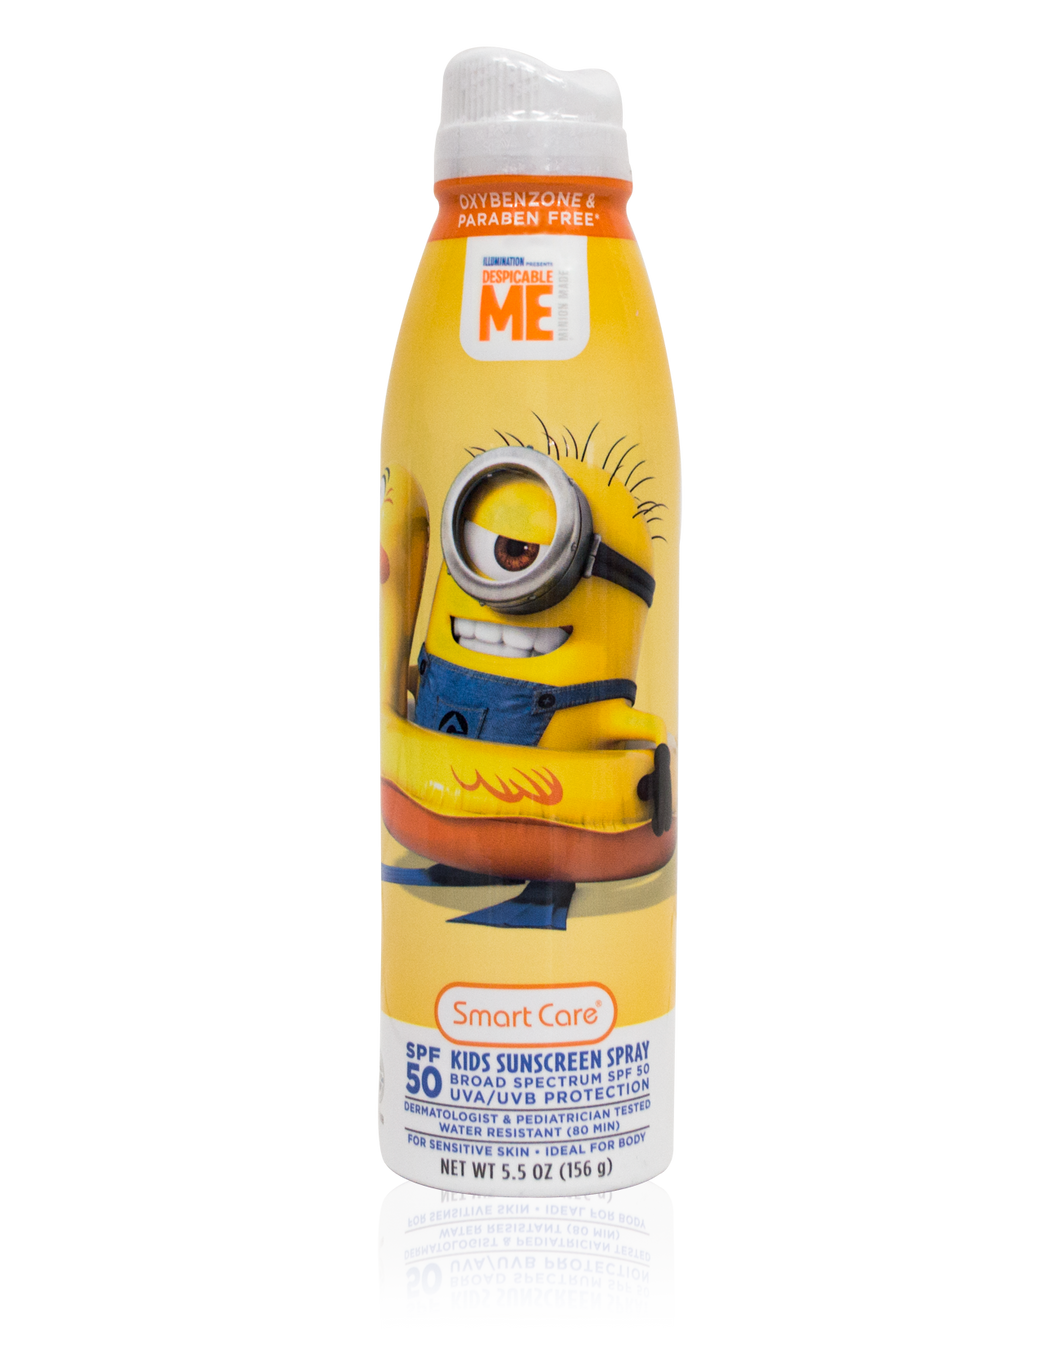 Smart Care Minions Sunscreen Spray (new) - Smart Care